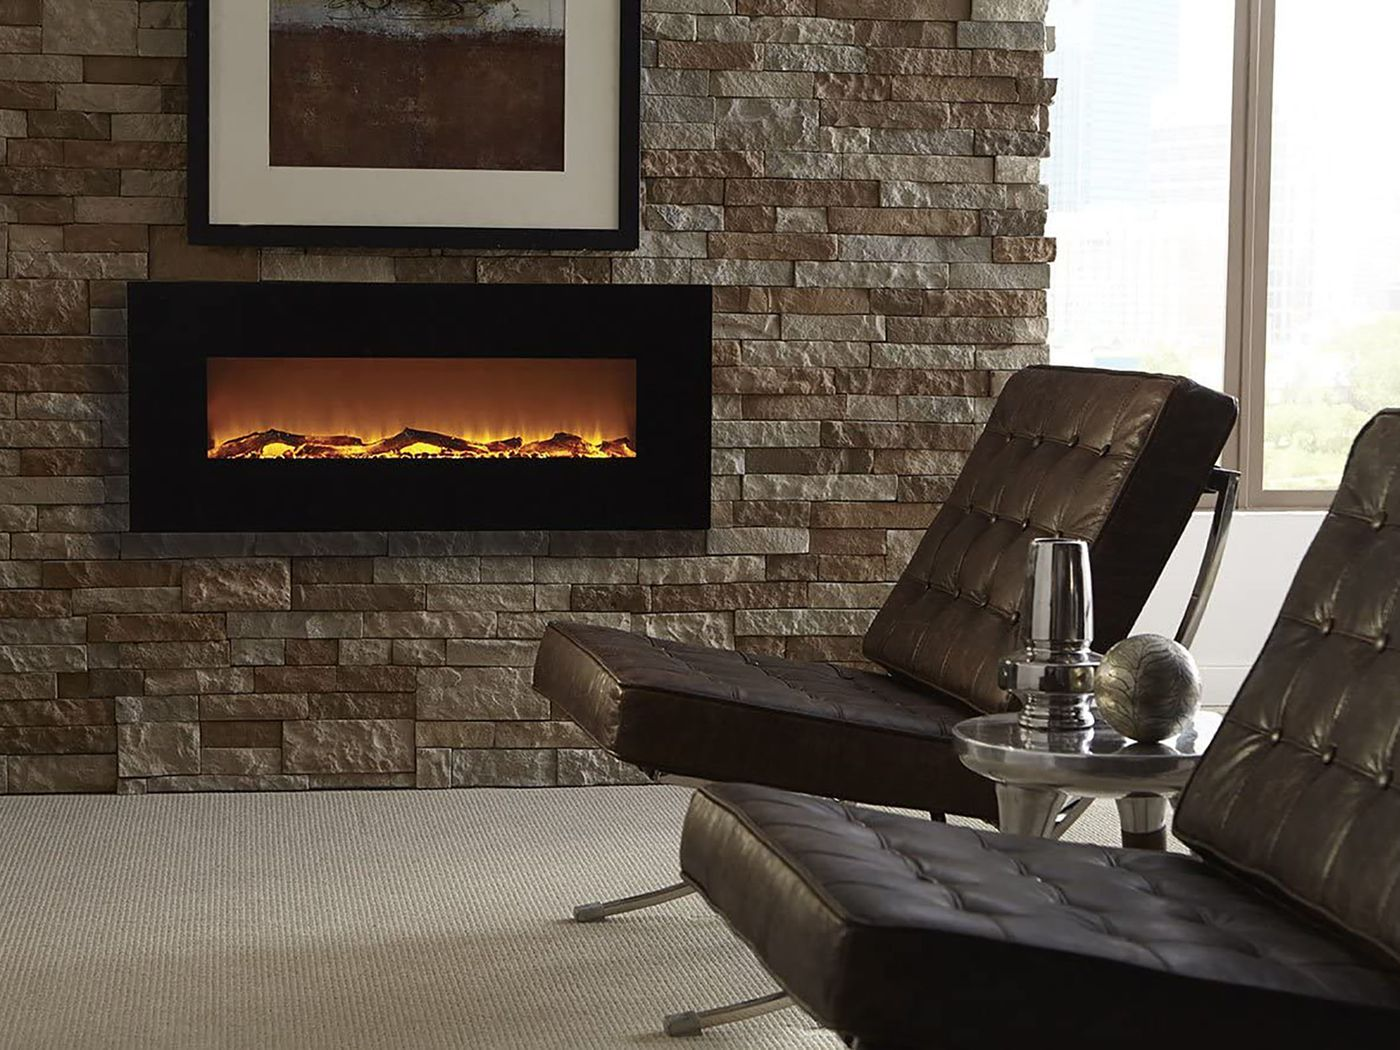 The 5 Best Electric Fireplaces 2021 This Old House